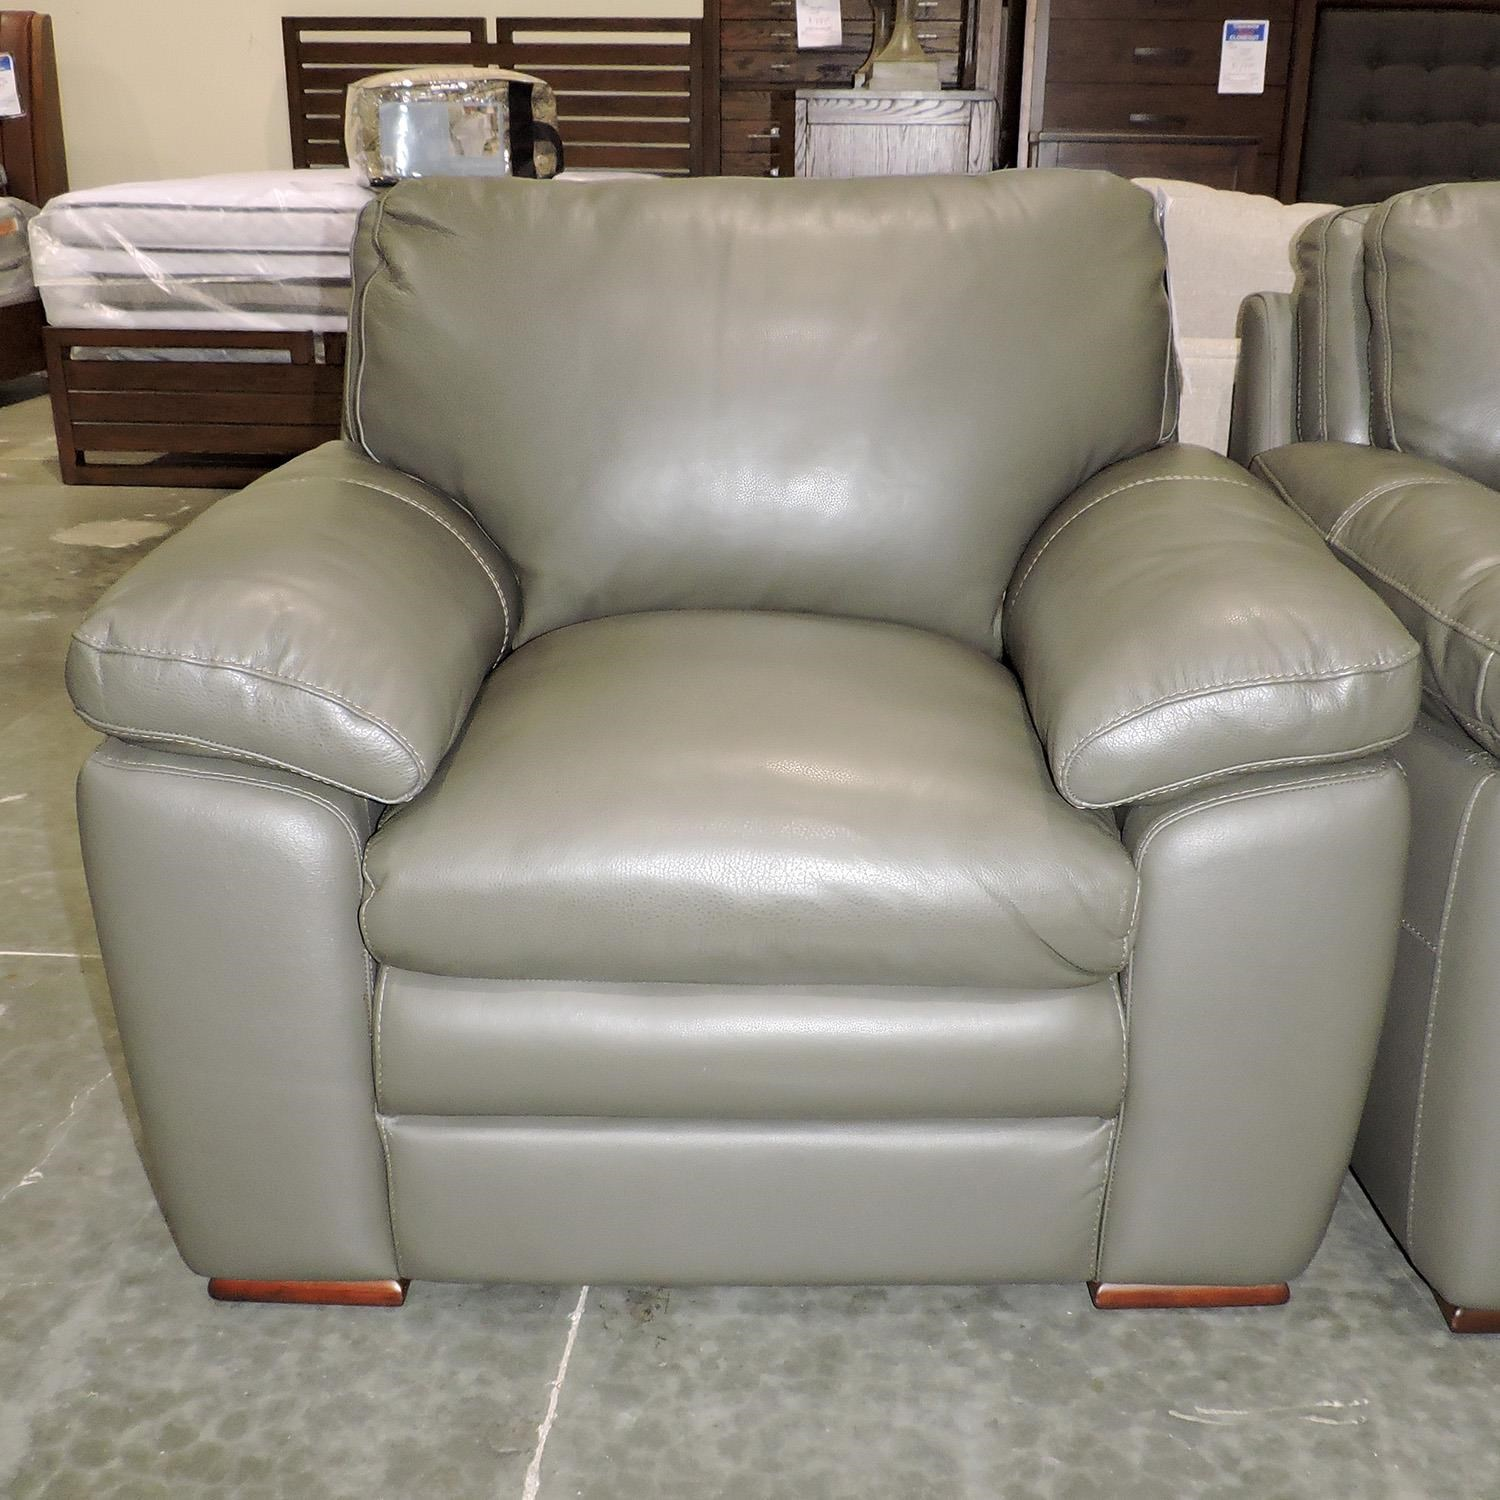 Belfort Select Clearance Cooper Leather Chair - Item Number: 268222065